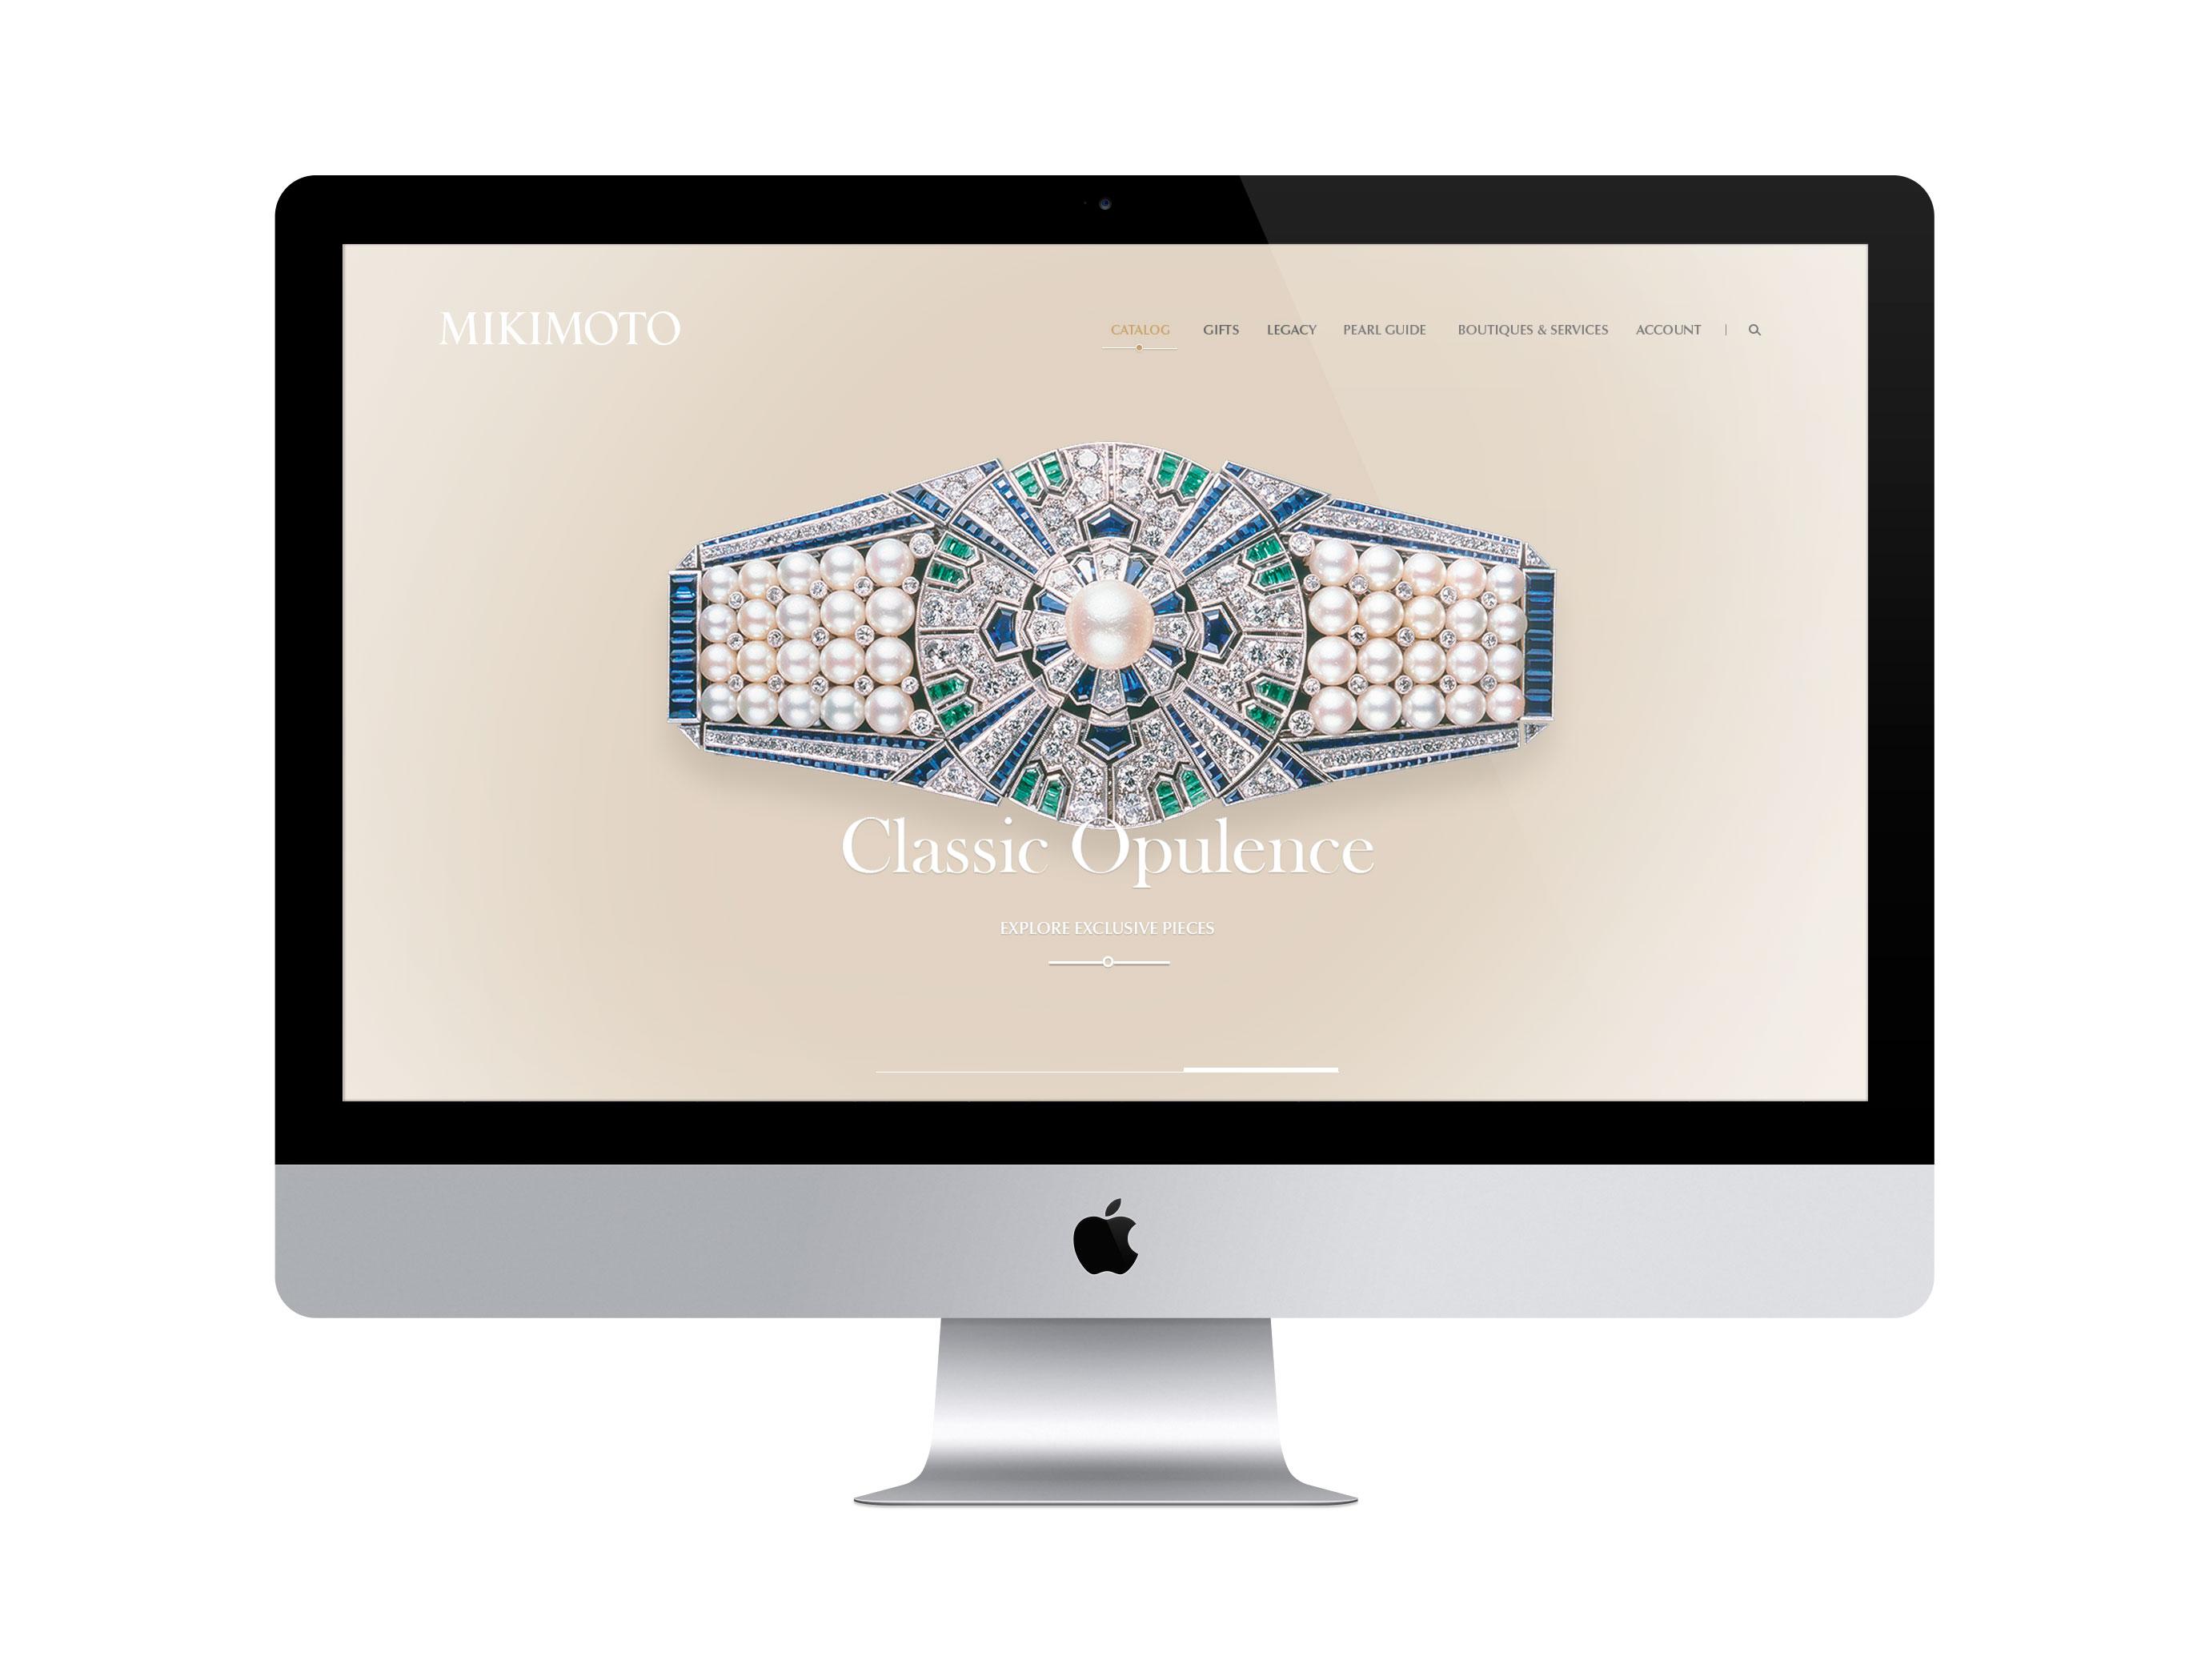 Mikimoto's digital presence renewed with elegant sophistication by DTE